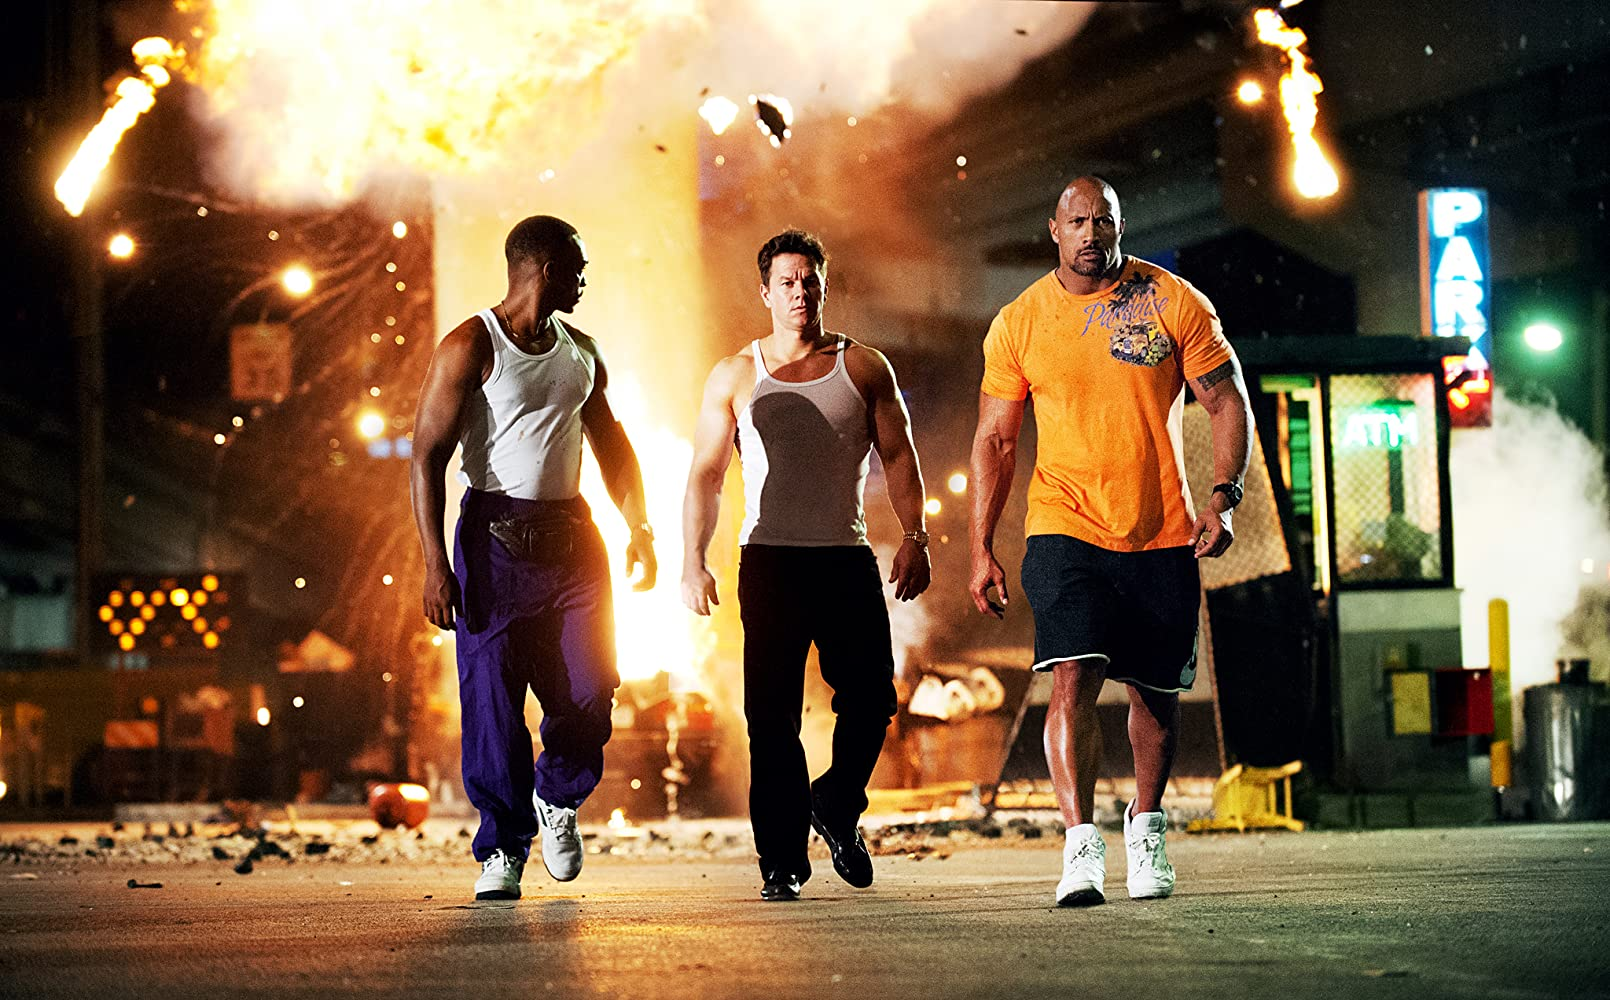 Mark Wahlberg, Dwayne Johnson, and Anthony Mackie in Pain & Gain (2013)